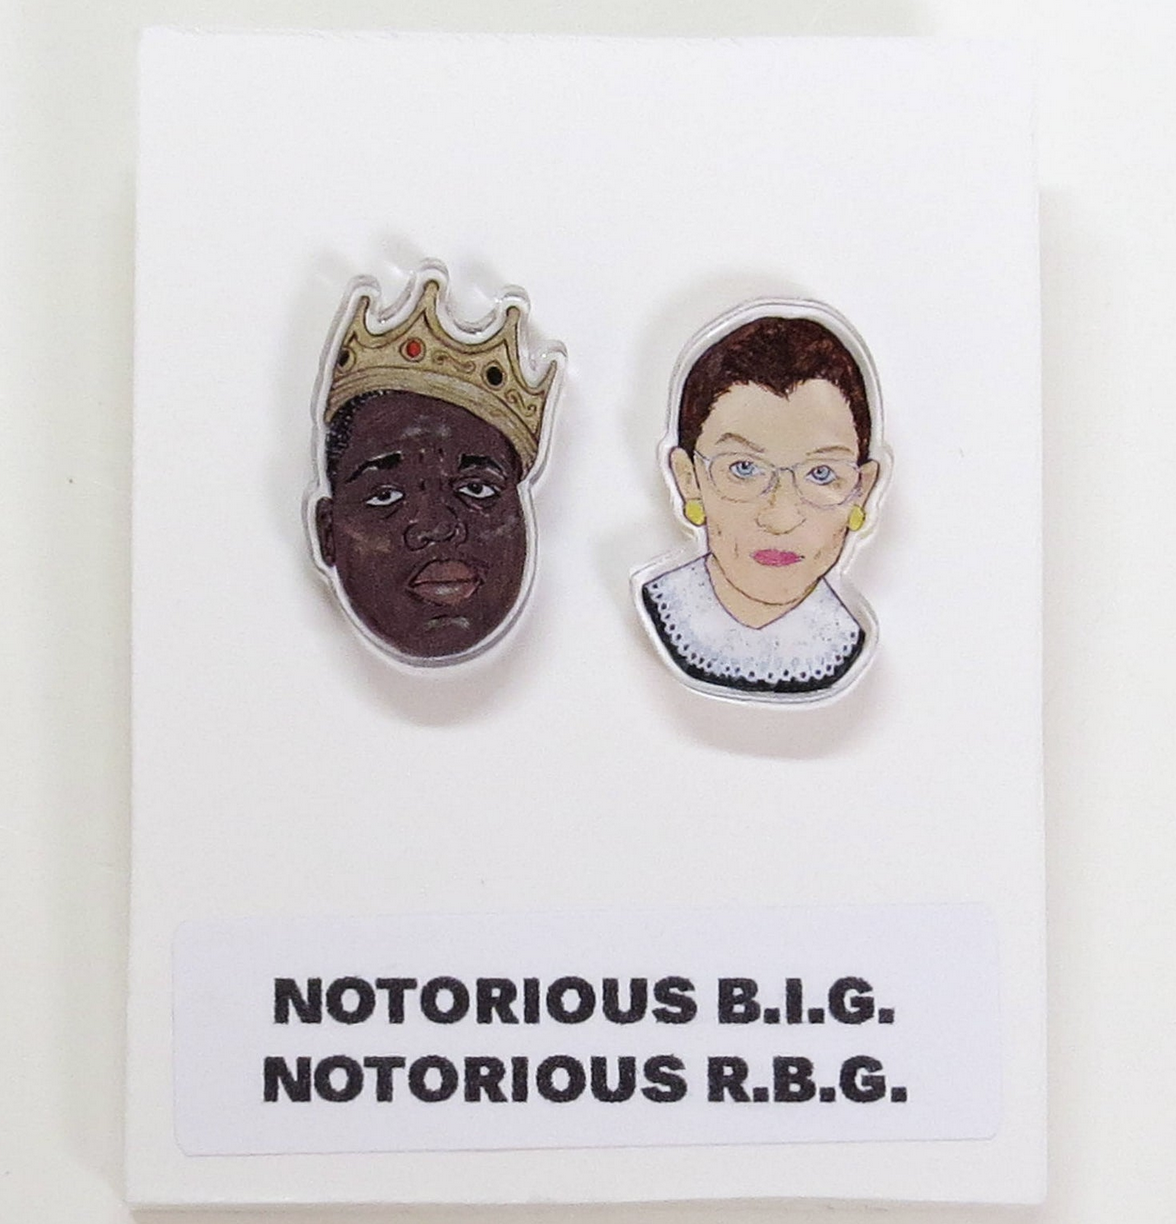 Leroy's Place Stud Earrings - Notorious